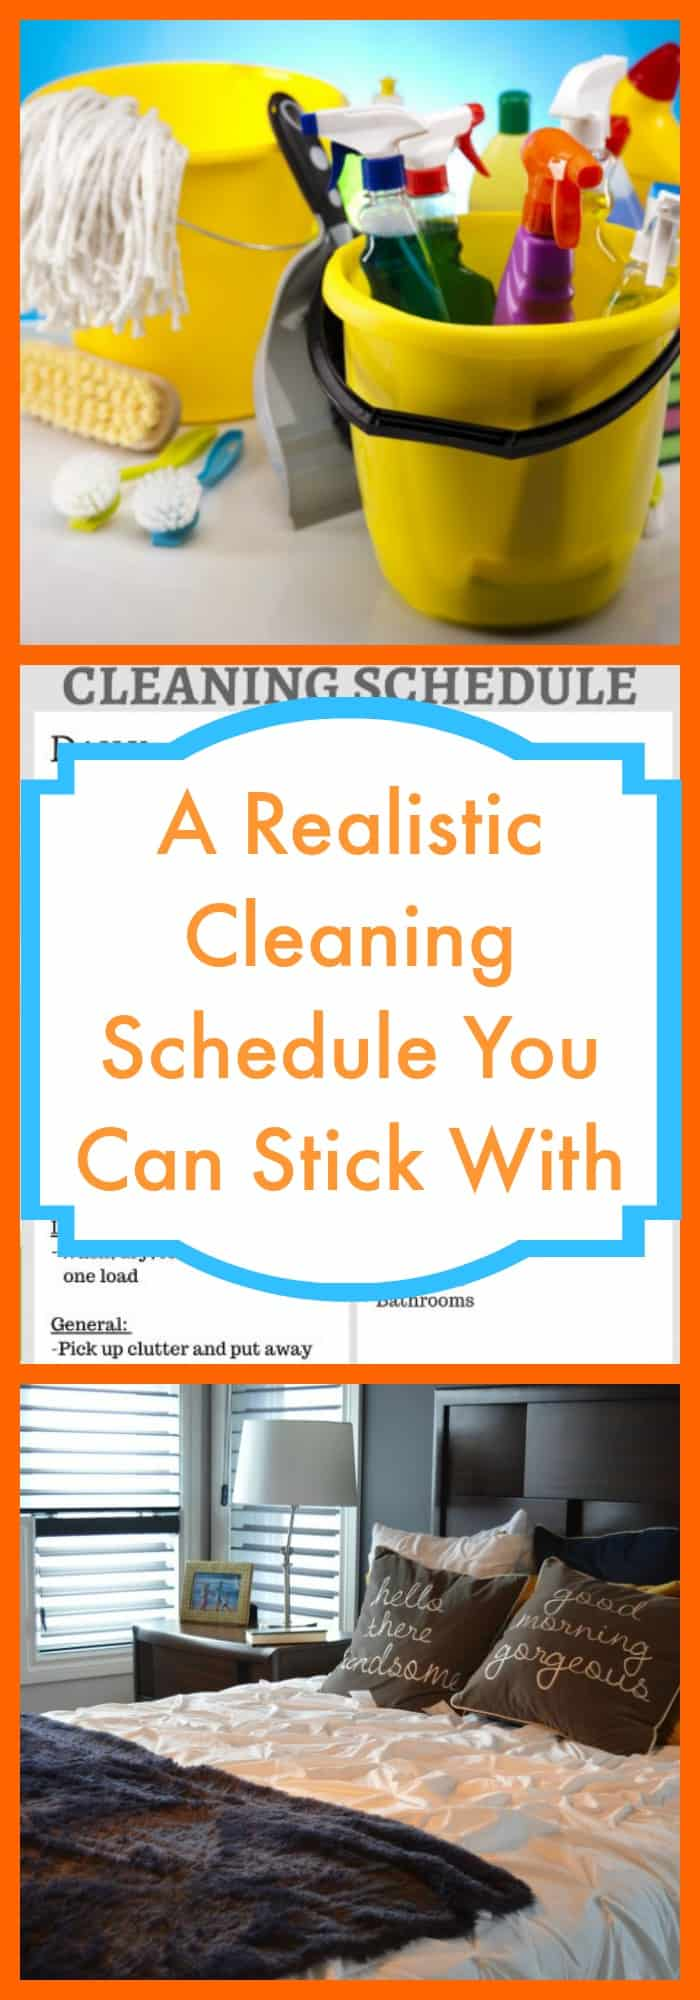 Cleaning--A Realistic Cleaning Schedule You Can Stick With--The Organized Mom